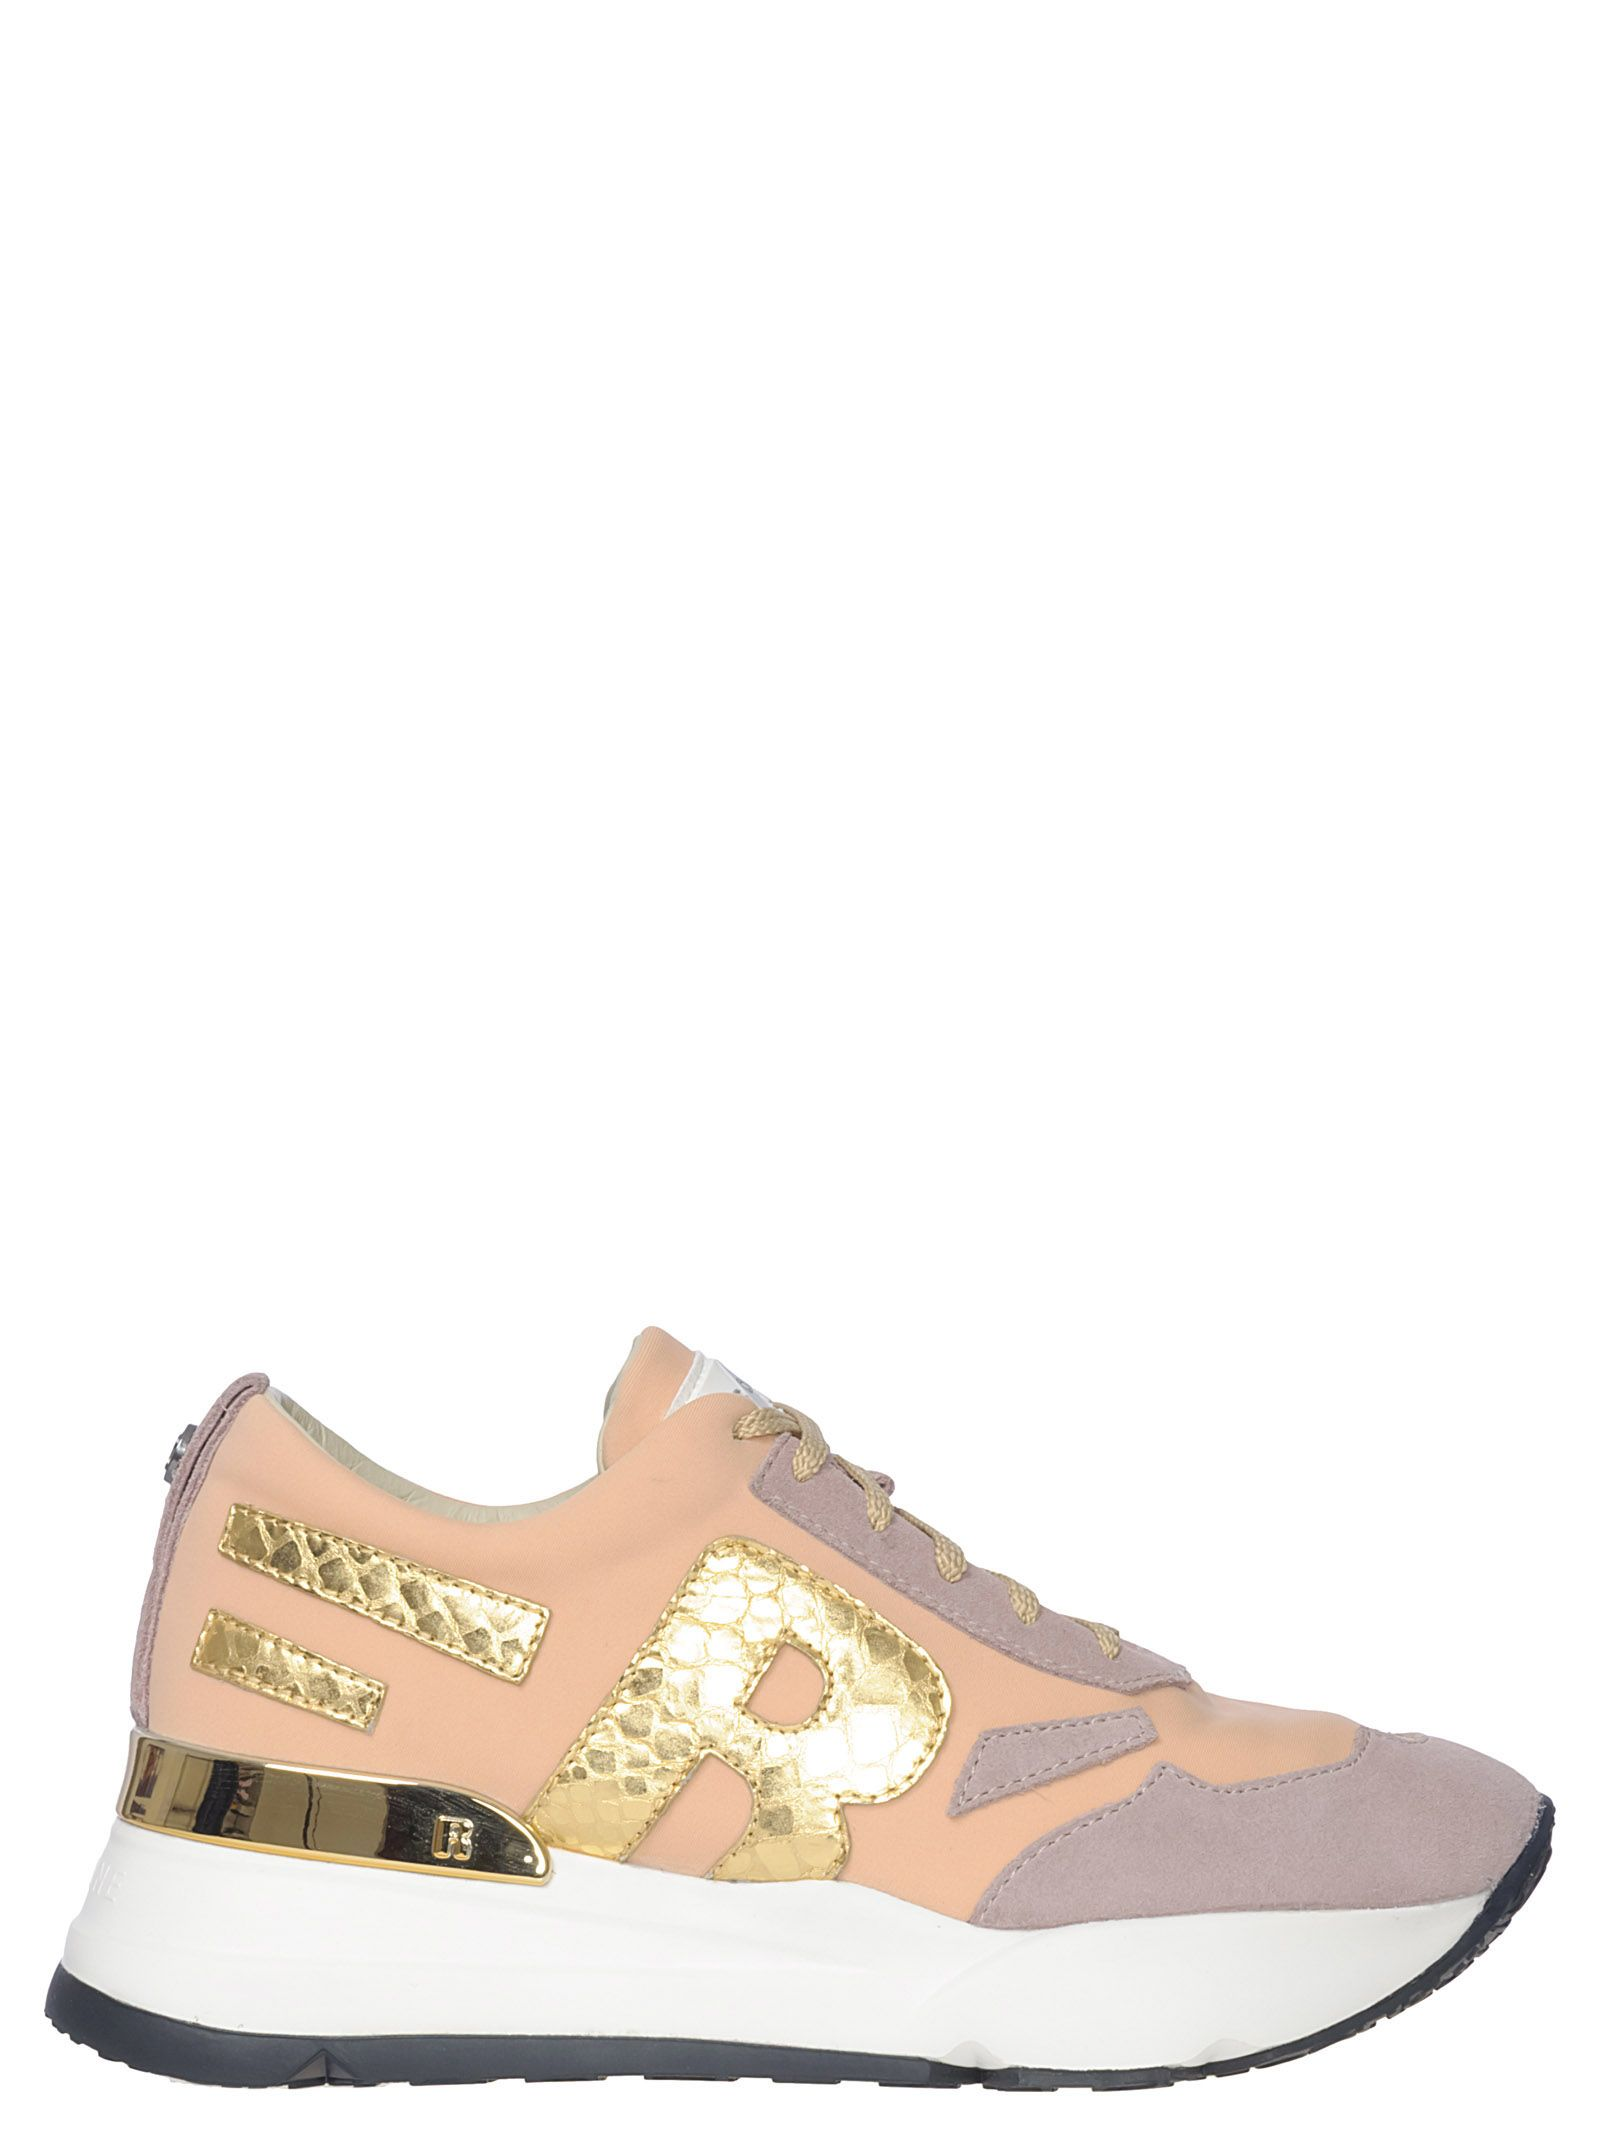 RUCO LINE Rucoline Sneakers Melog in Nude